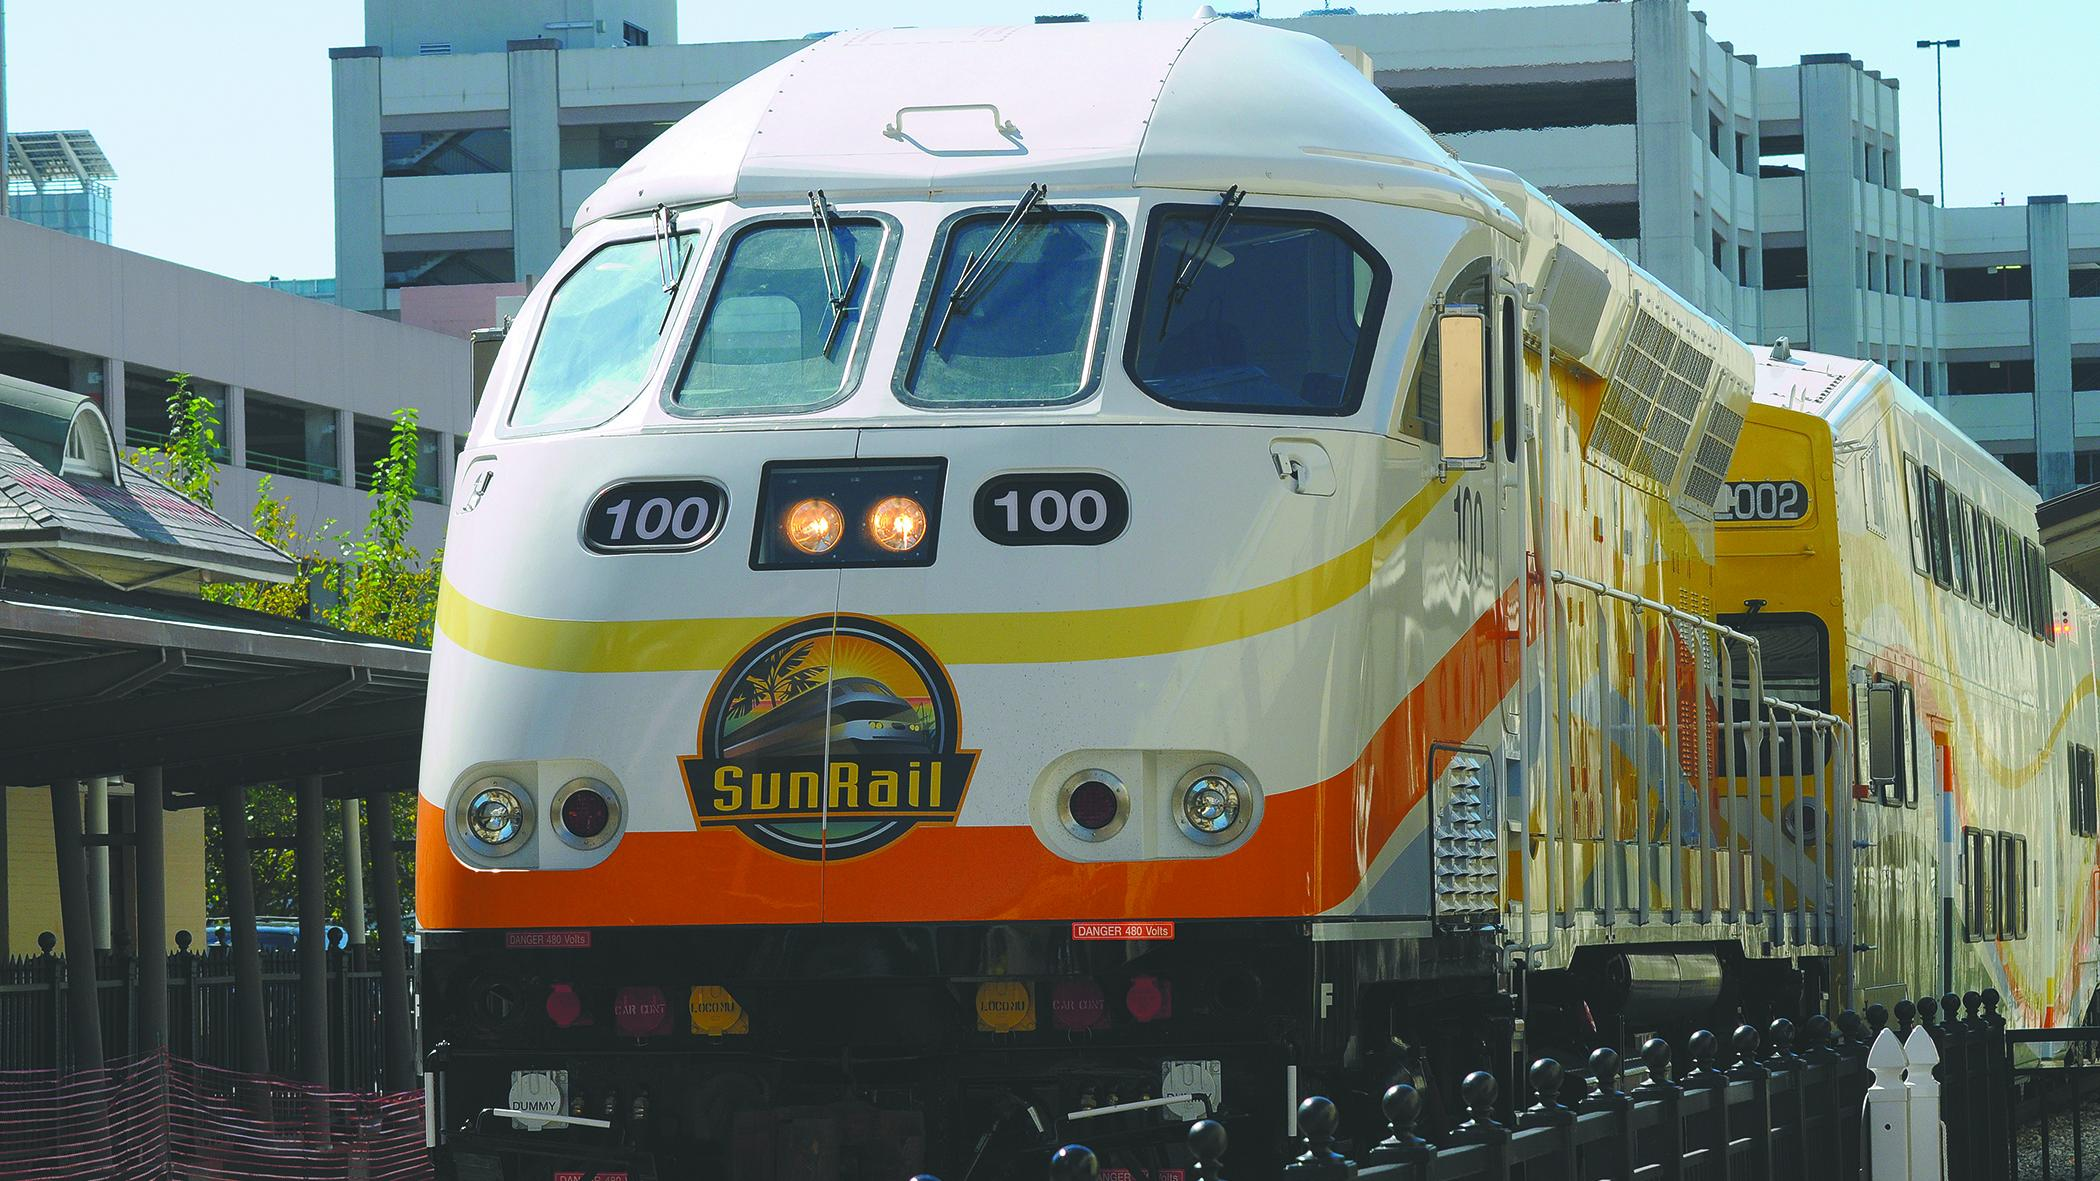 Would you use SunRail service on Saturdays?